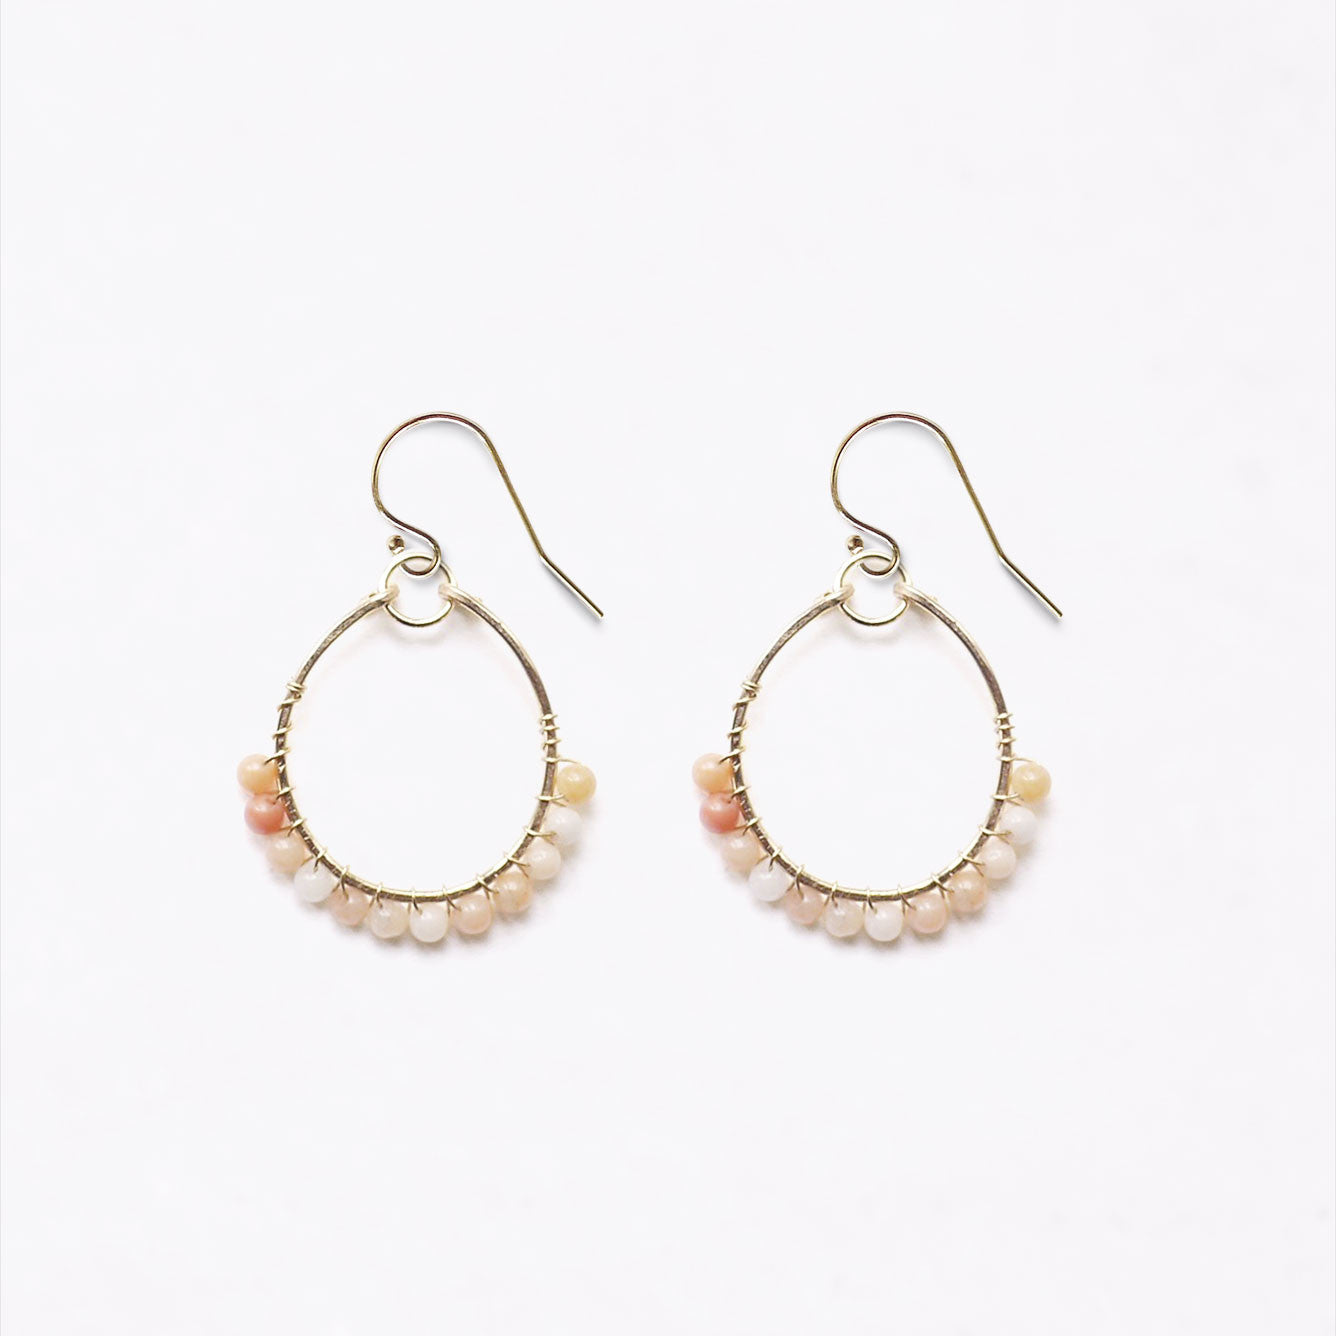 Wanderlust Life 14k gold filled hammered hoop earring with a row of delicate peach aventurine beads